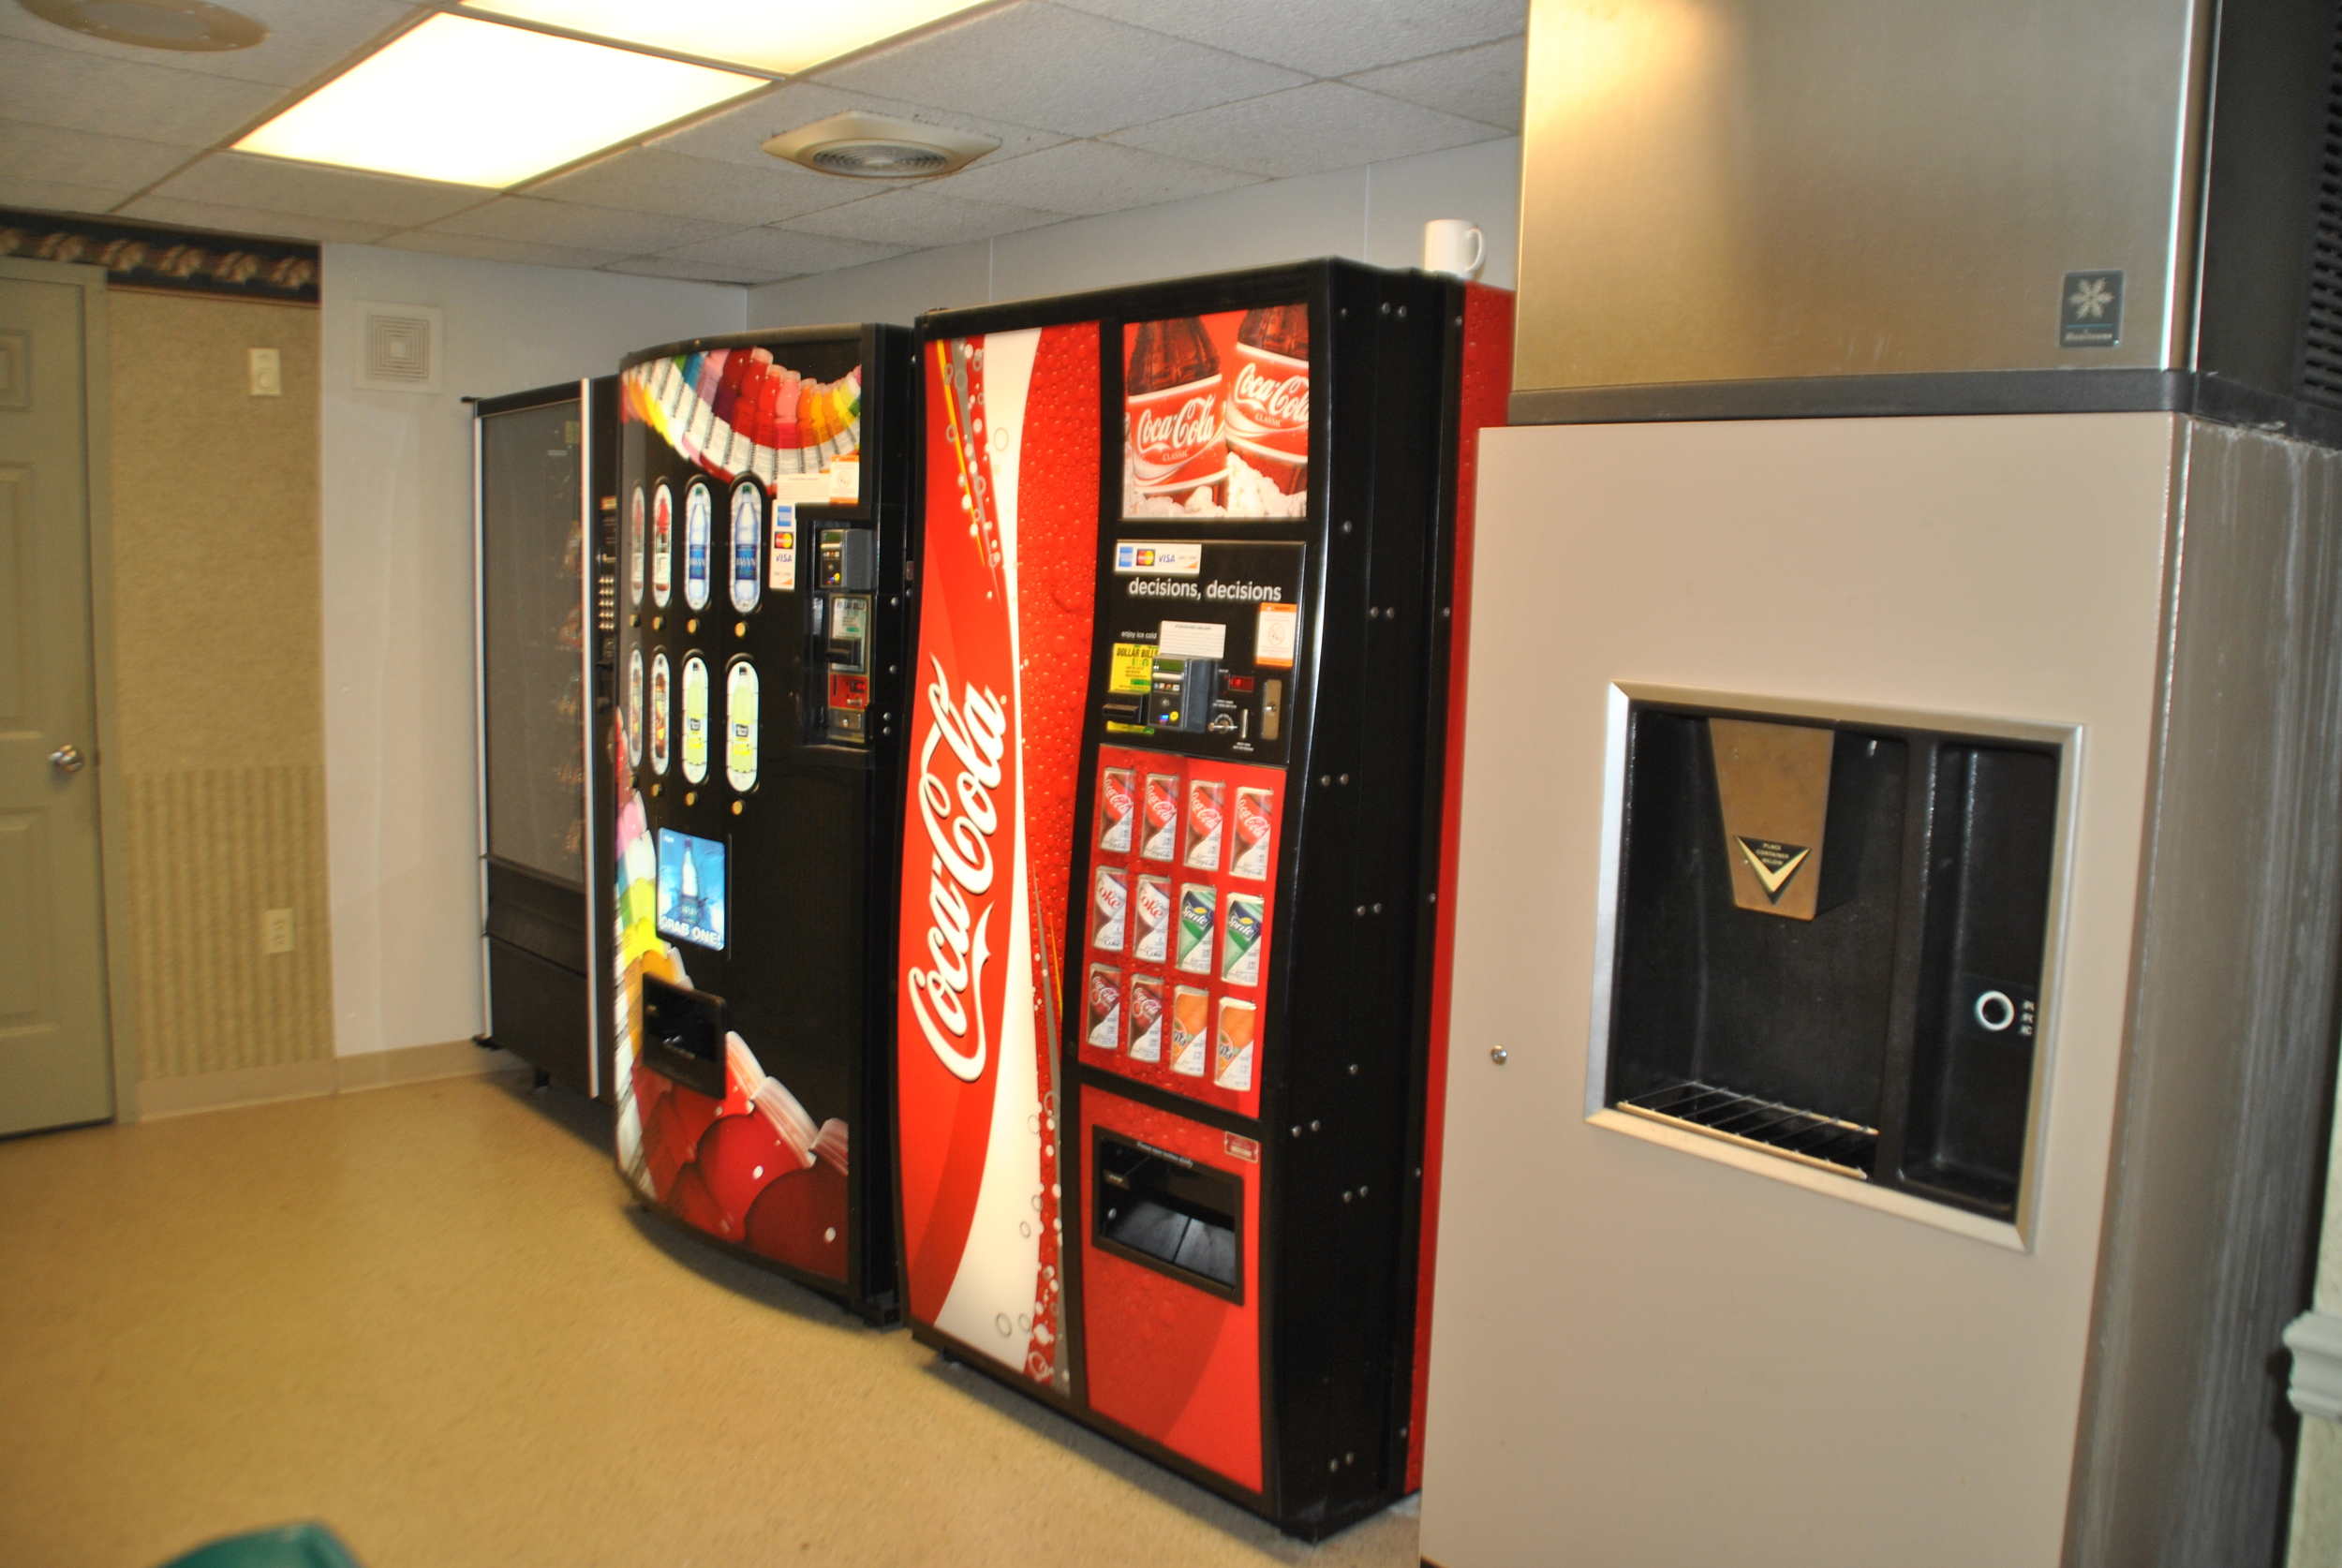 Vending and Ice Machines next to the Elevator